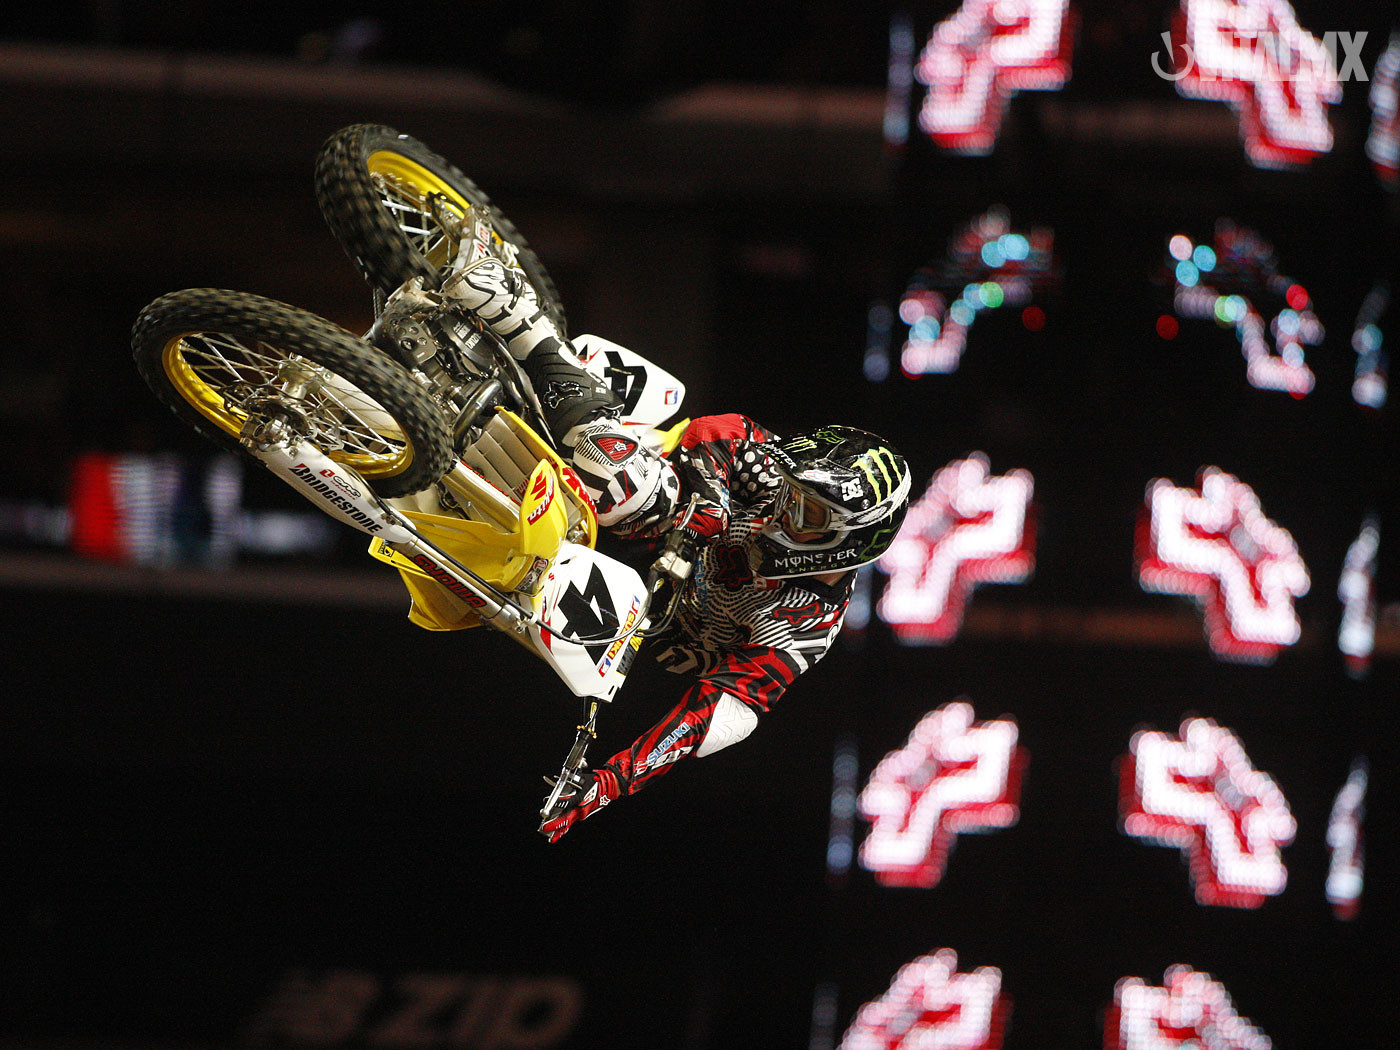 Carmichael x games 14 best whip the big picture rc whip ricky carmichael x games 14 best whip the big picture rc whip motocross voltagebd Image collections